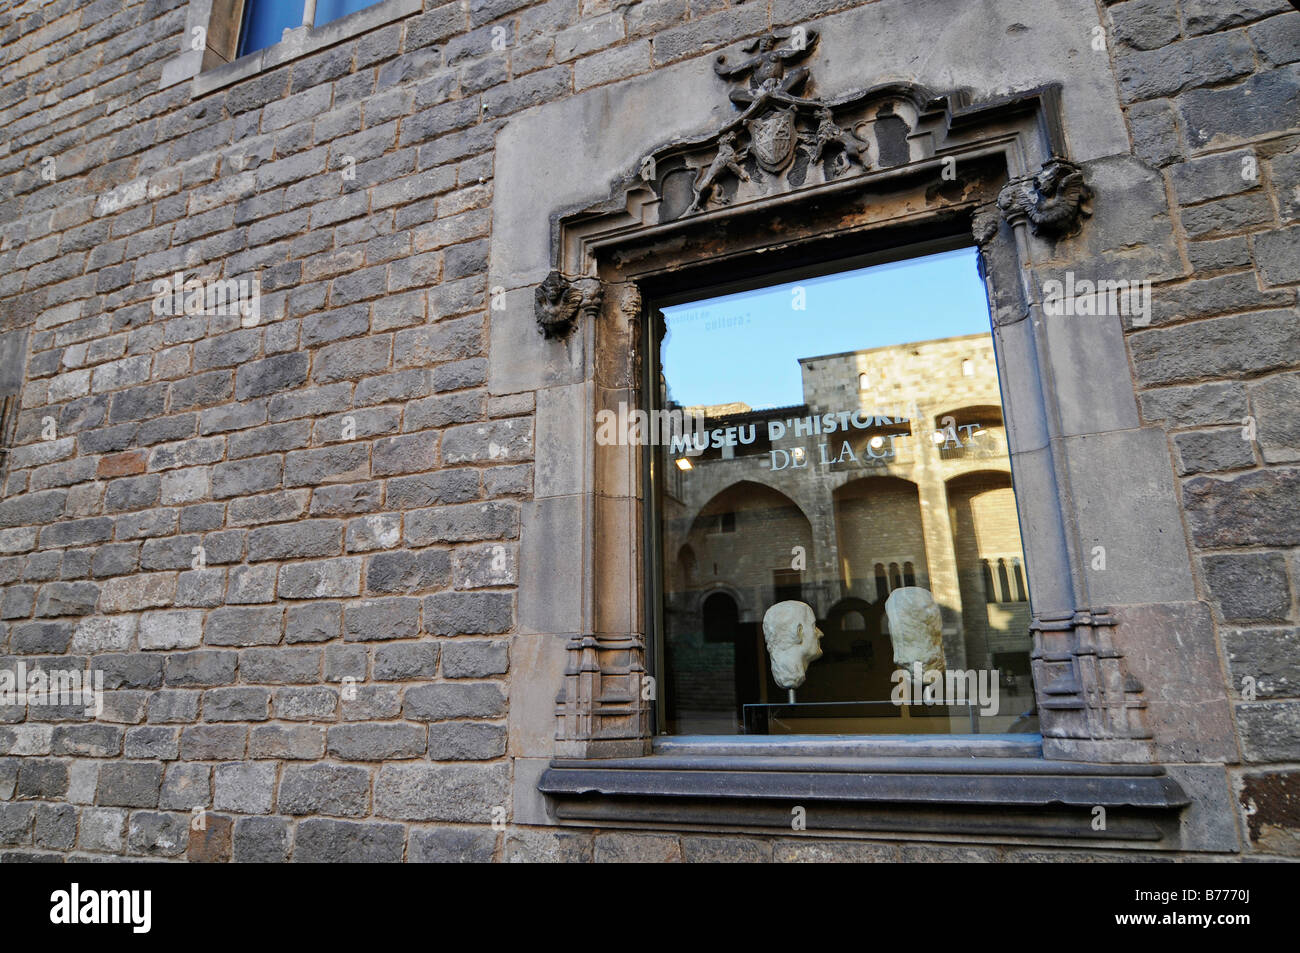 Reflection in a window, Museu de Historia de la Ciutat, historical museum, Placa del Rei, Plaza, Barri Gotic, Barcelona, - Stock Image